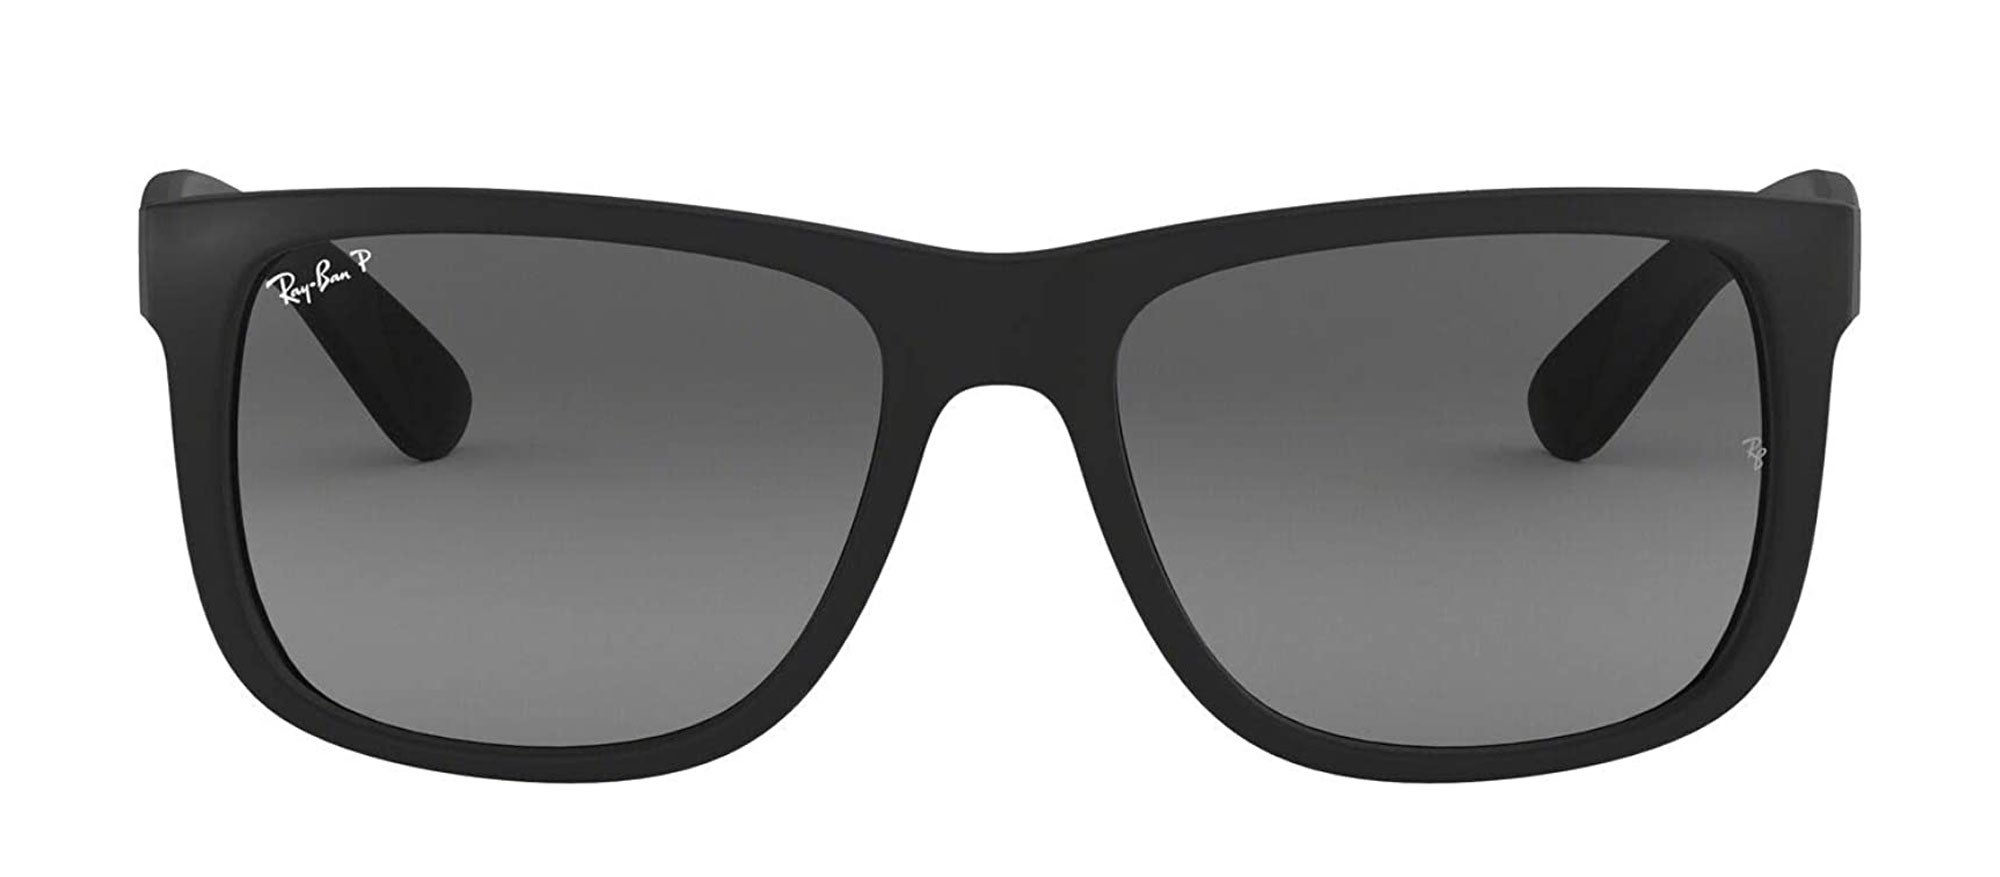 Ray-Ban Justin Rectangular Sunglasses, Black Rubber/Polarized Grey Gradient, 55 mm